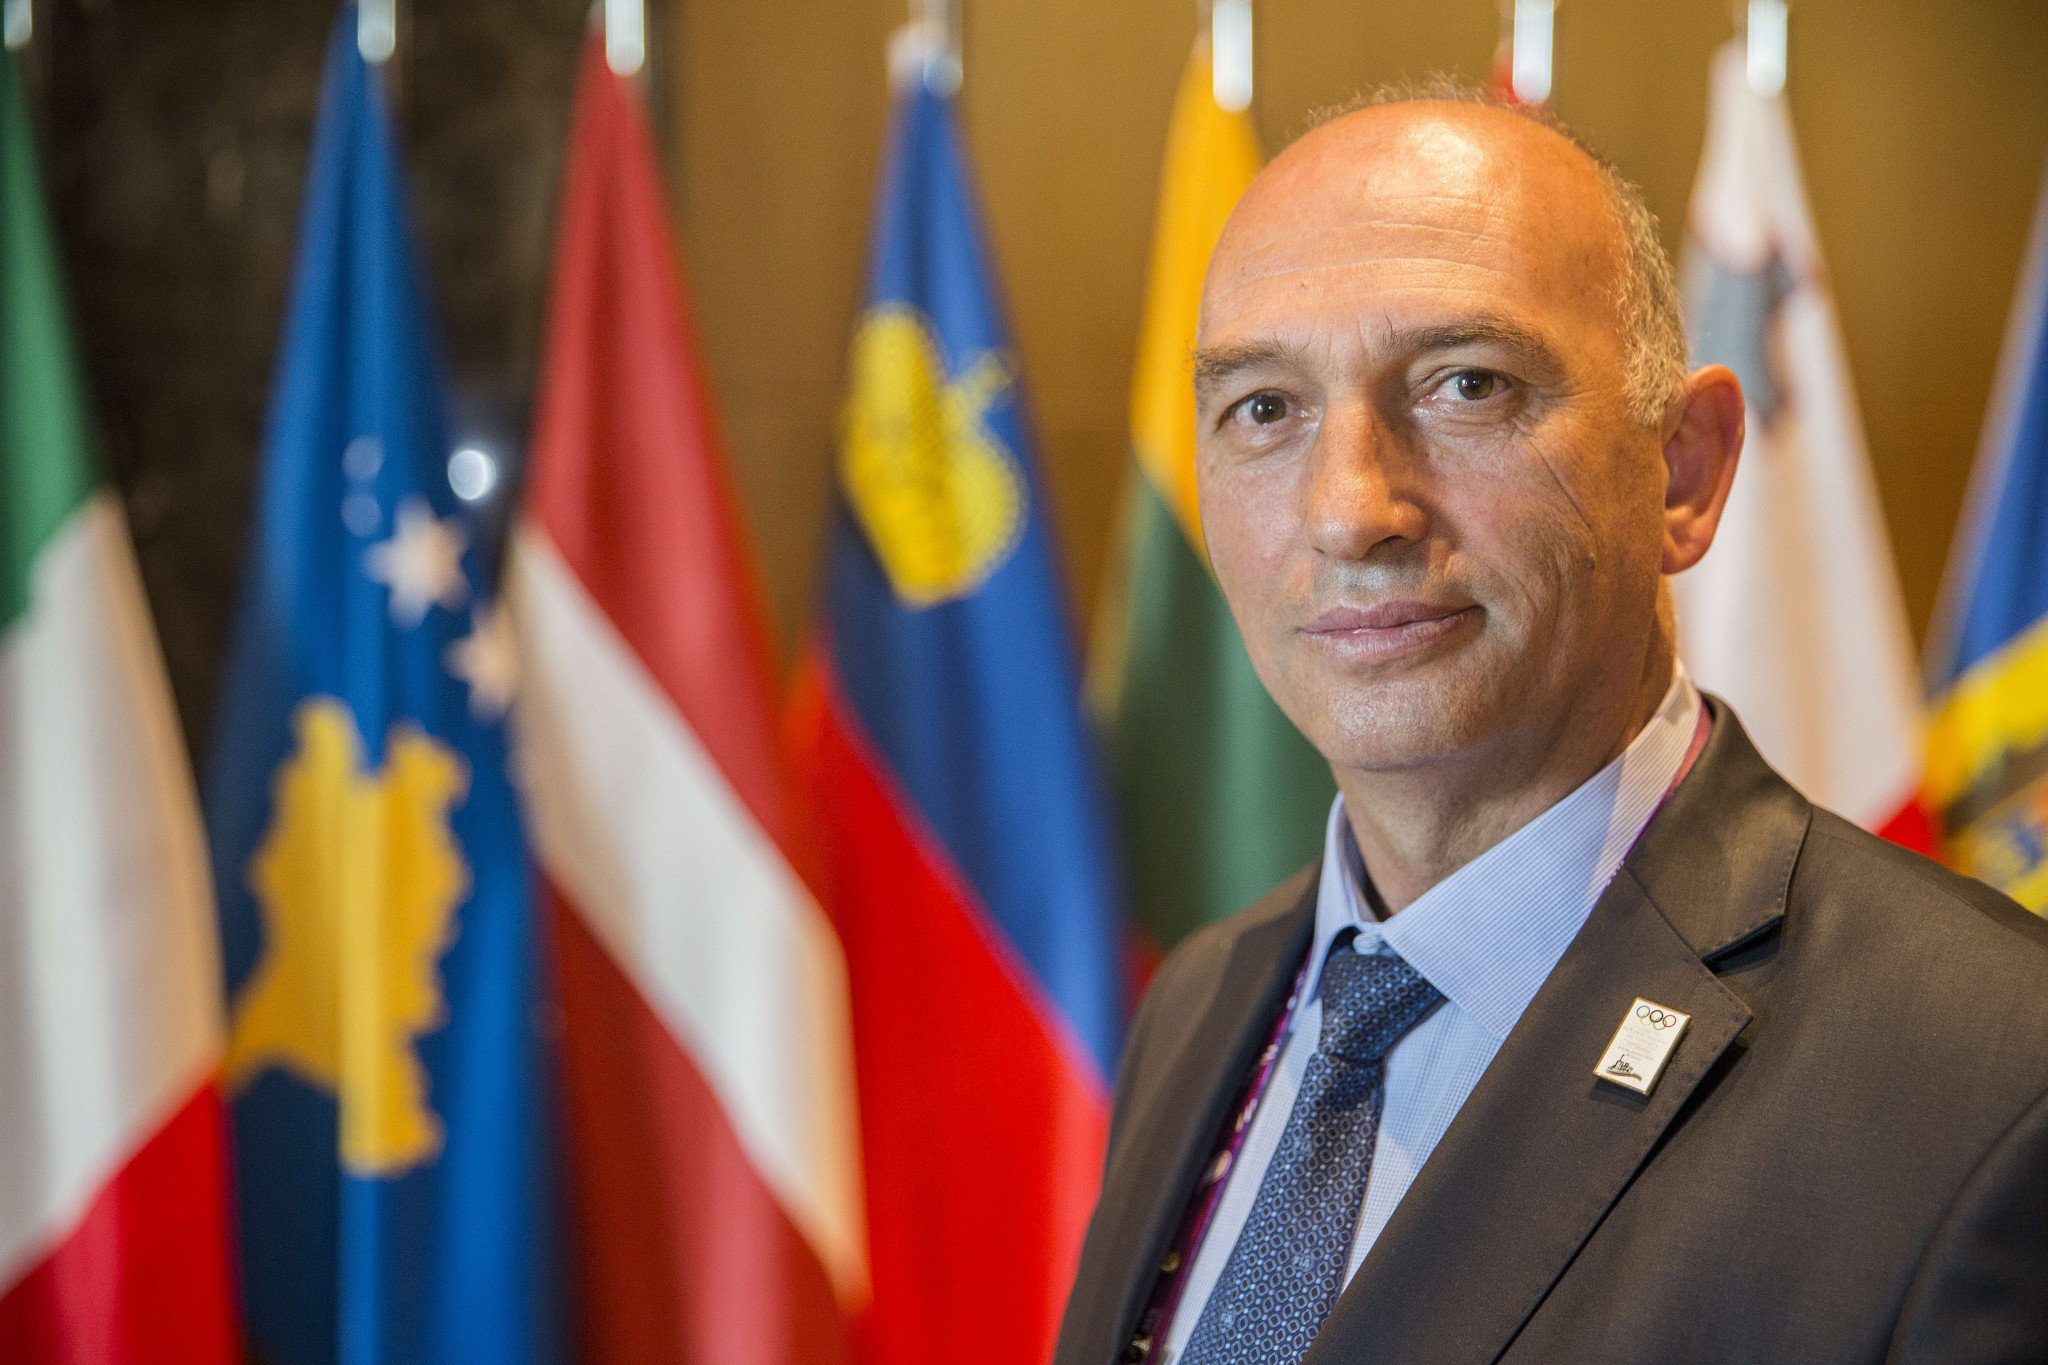 Kosovo NOC President Hasani signs up to SIGA sports integrity standards